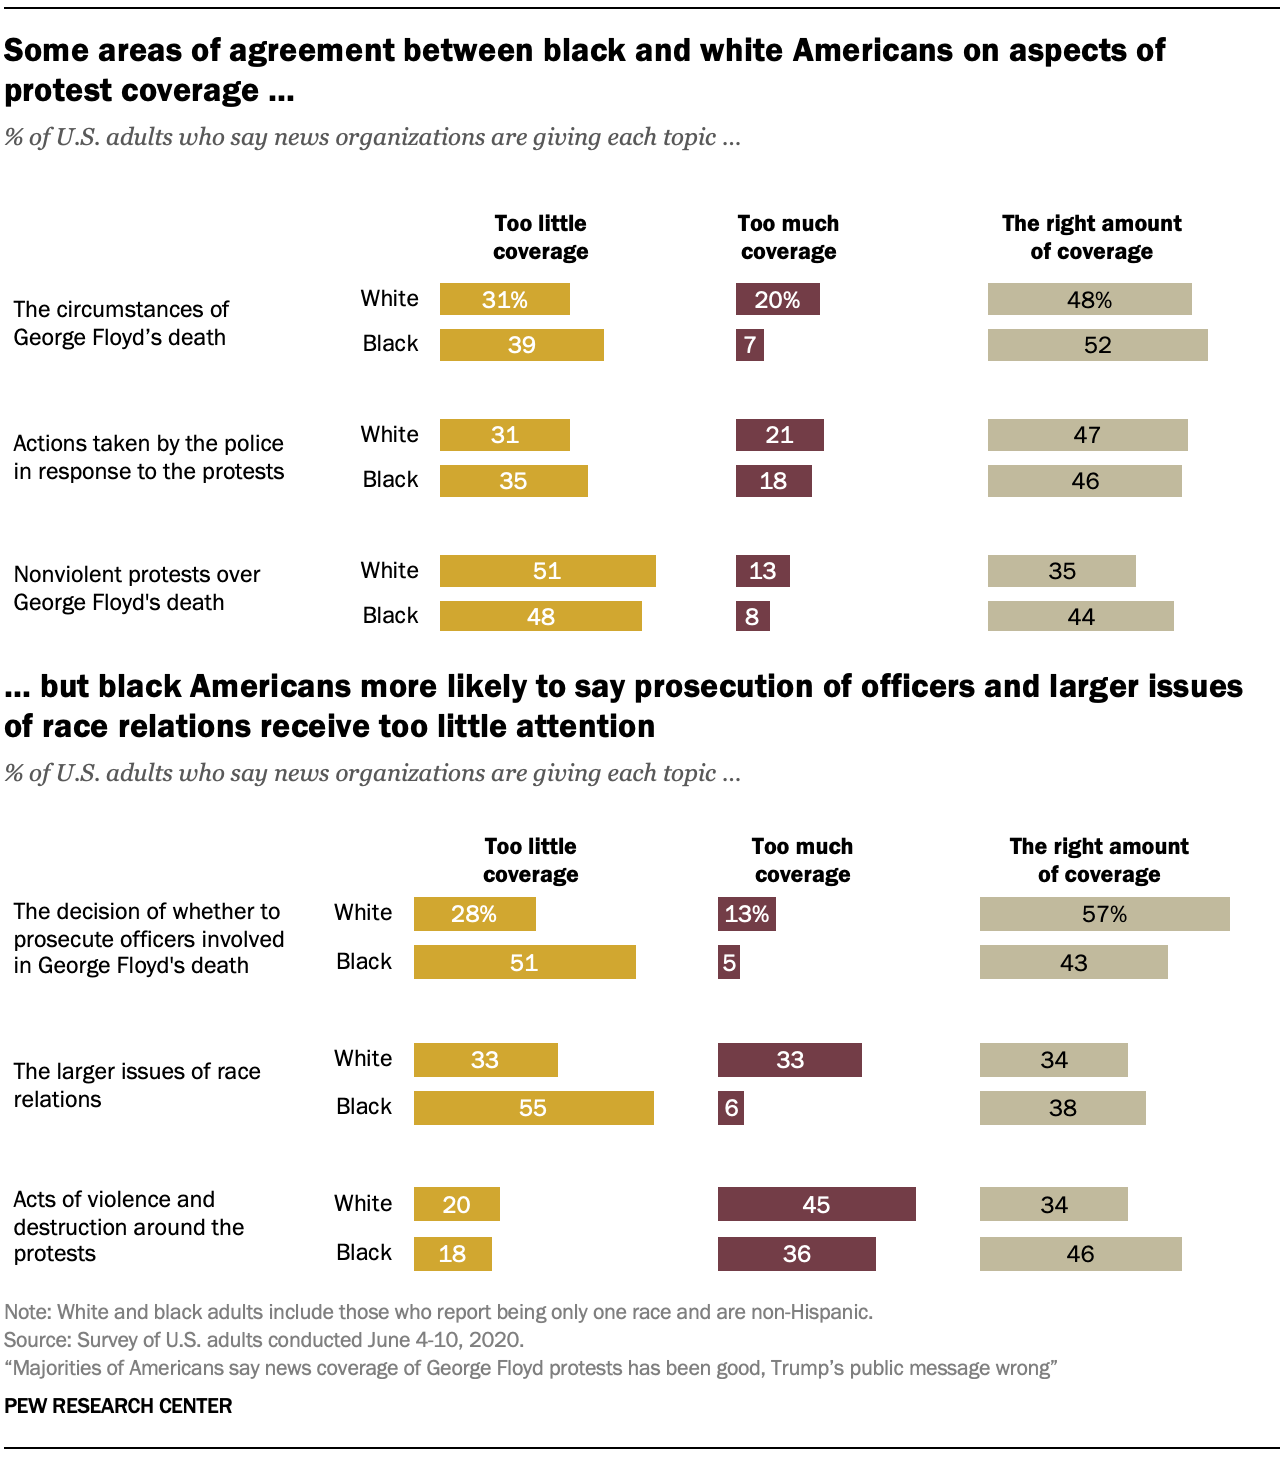 Some areas of agreement between black and white Americans on aspects of protest coverage …